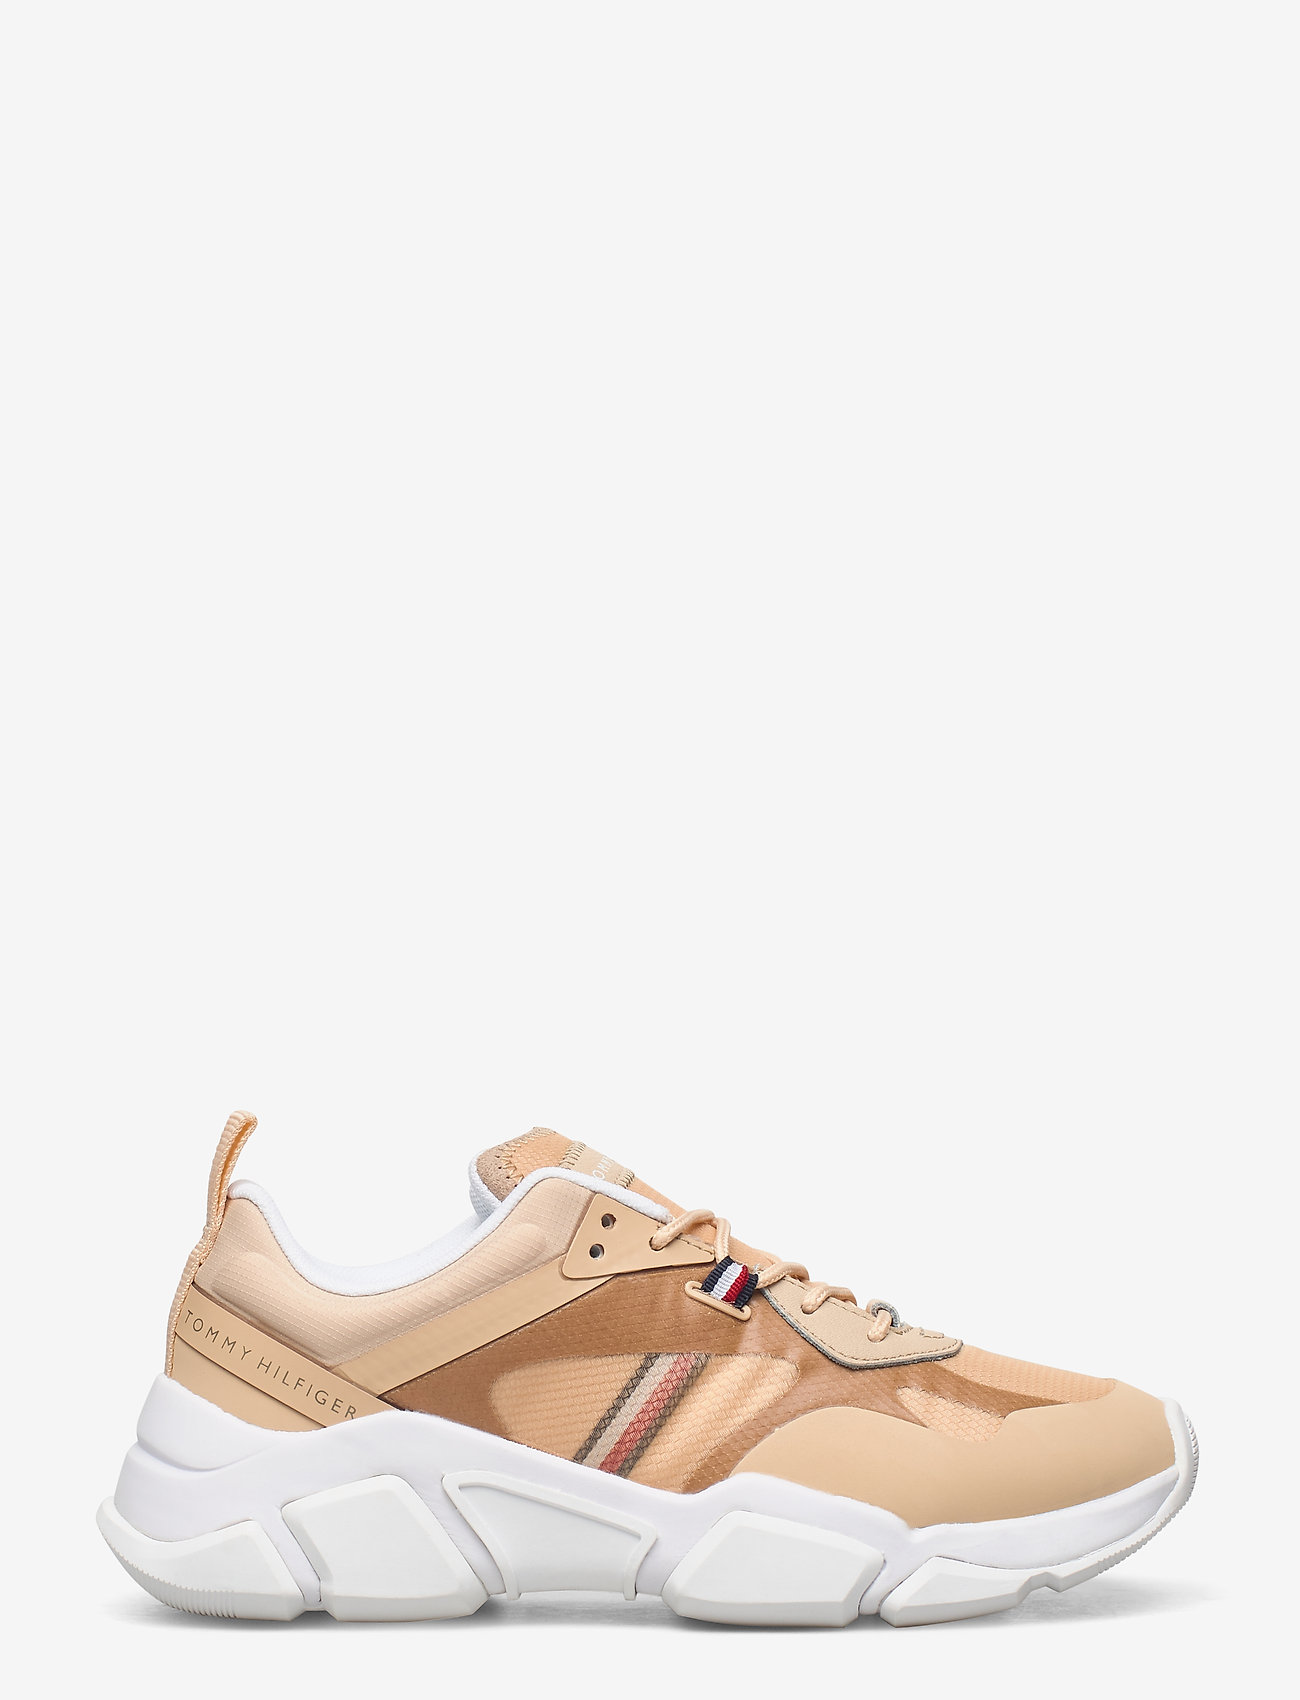 Tommy Hilfiger - TECHNICAL CHUNKY TOMMY SNEAKER - chunky sneakers - light gold - 1